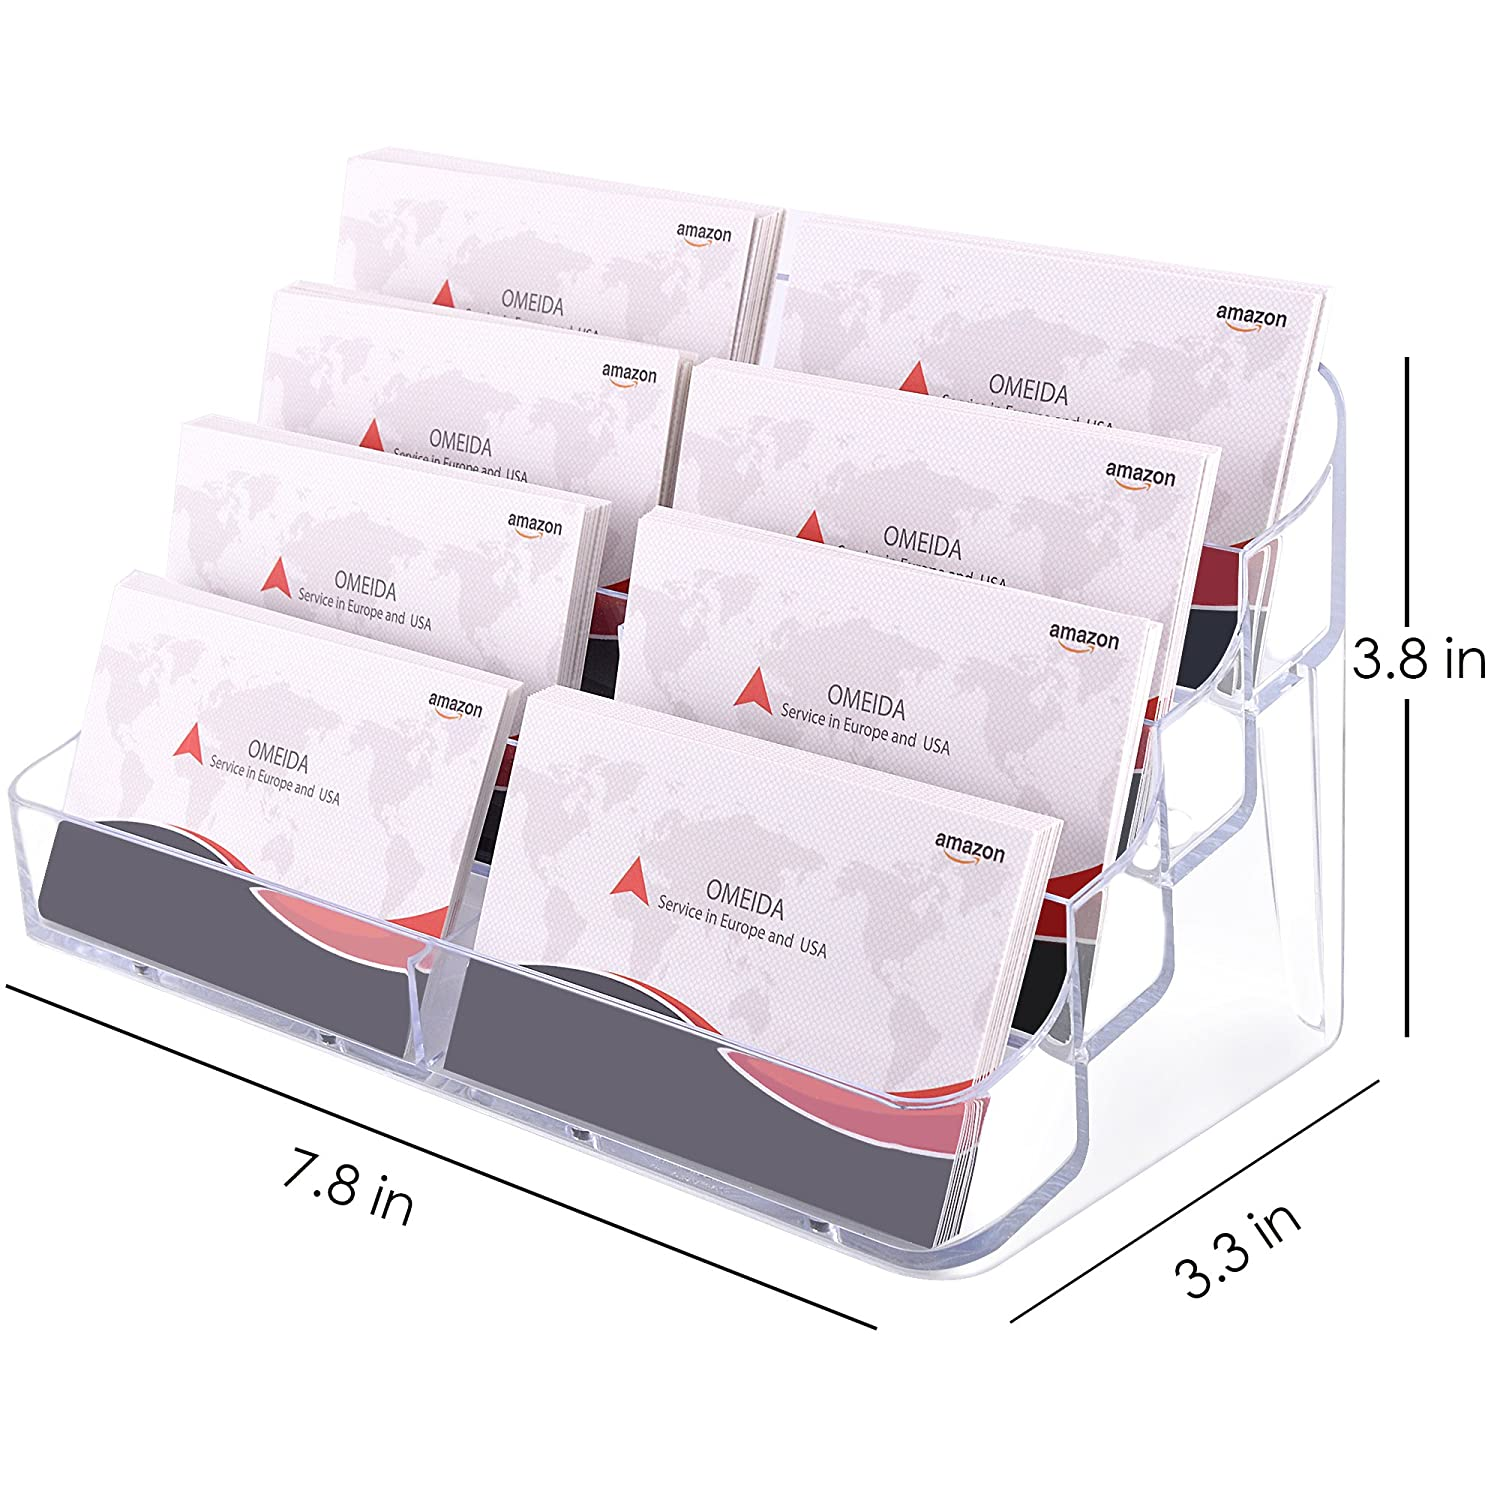 Amazon MaxGear Acrylic Business Card Holder Clear Business Card Stand for Desk or Counter 8 Pocket 400 Capacity fice Products